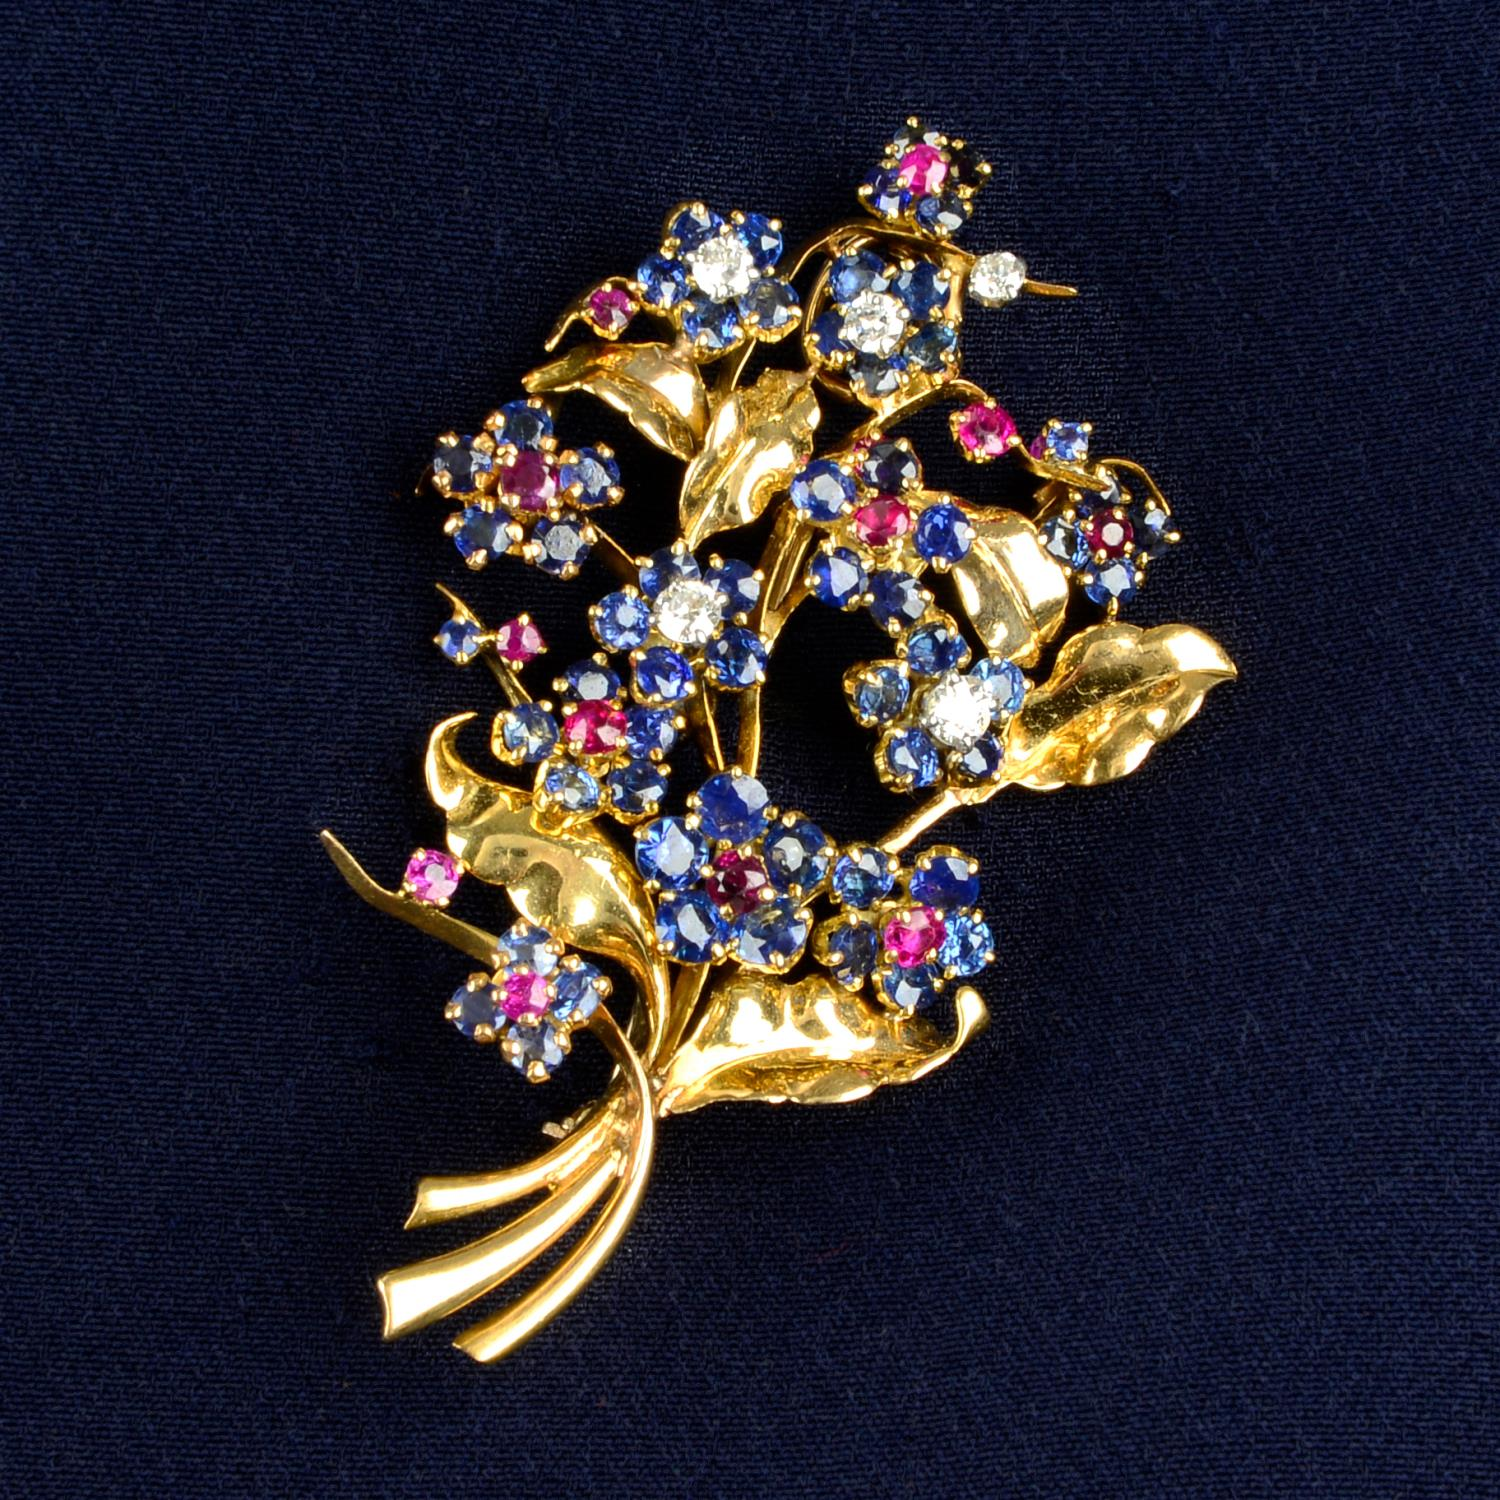 A mid 20th century 18ct gold sapphire, ruby and diamond floral brooch, by Mauboussin.